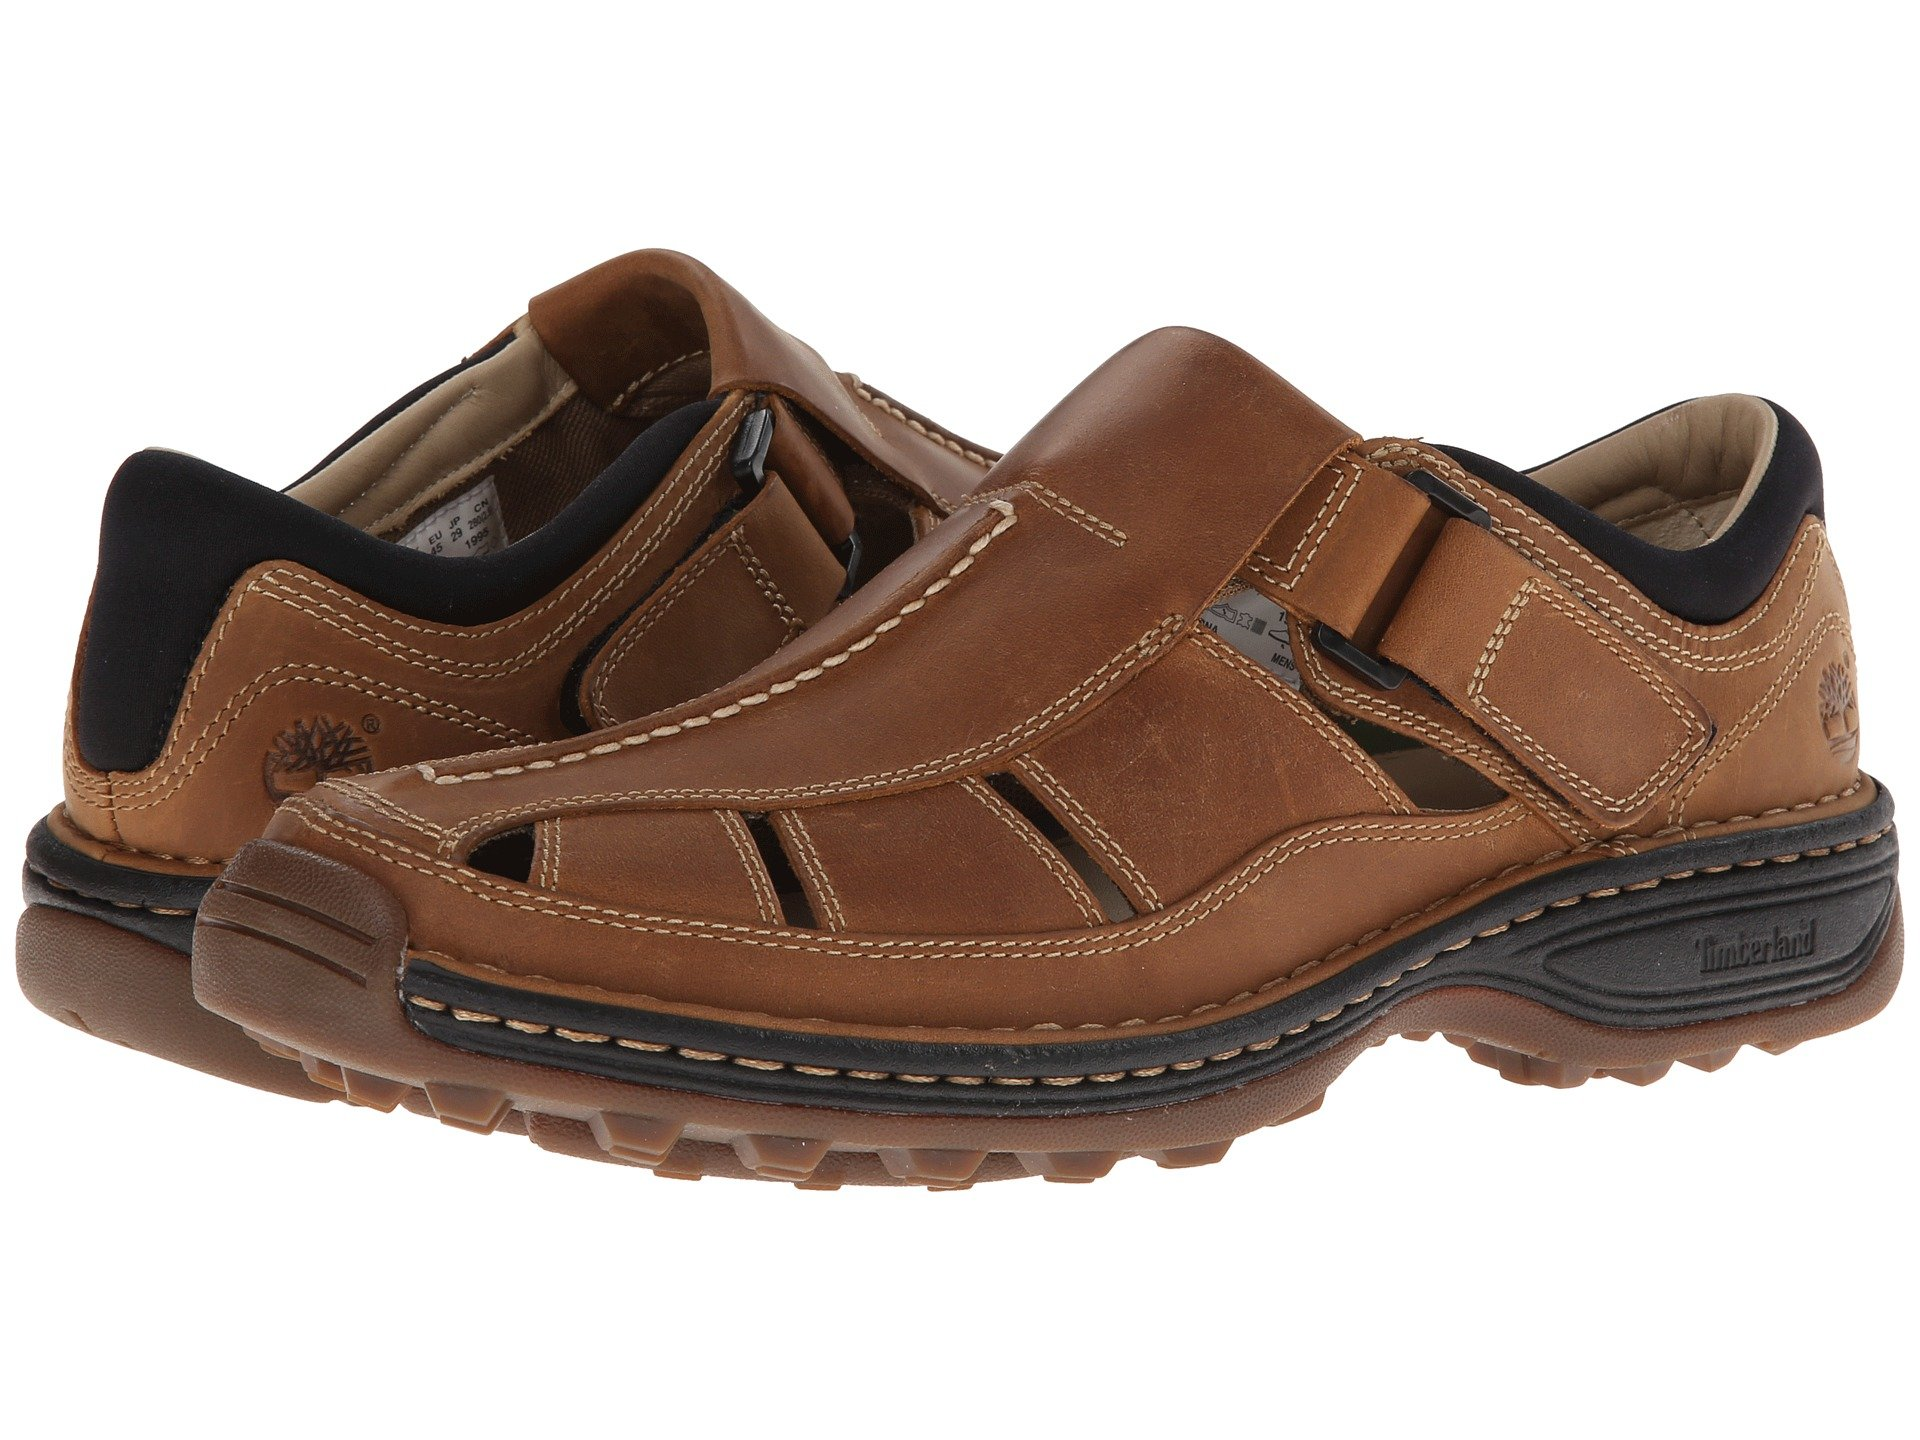 9878418addfb SKECHERS. Relaxed Fit 360 Supreme - Bosnia.  27.99MSRP   40.00. 4Rated 4  stars4Rated 4 stars. Light Brown